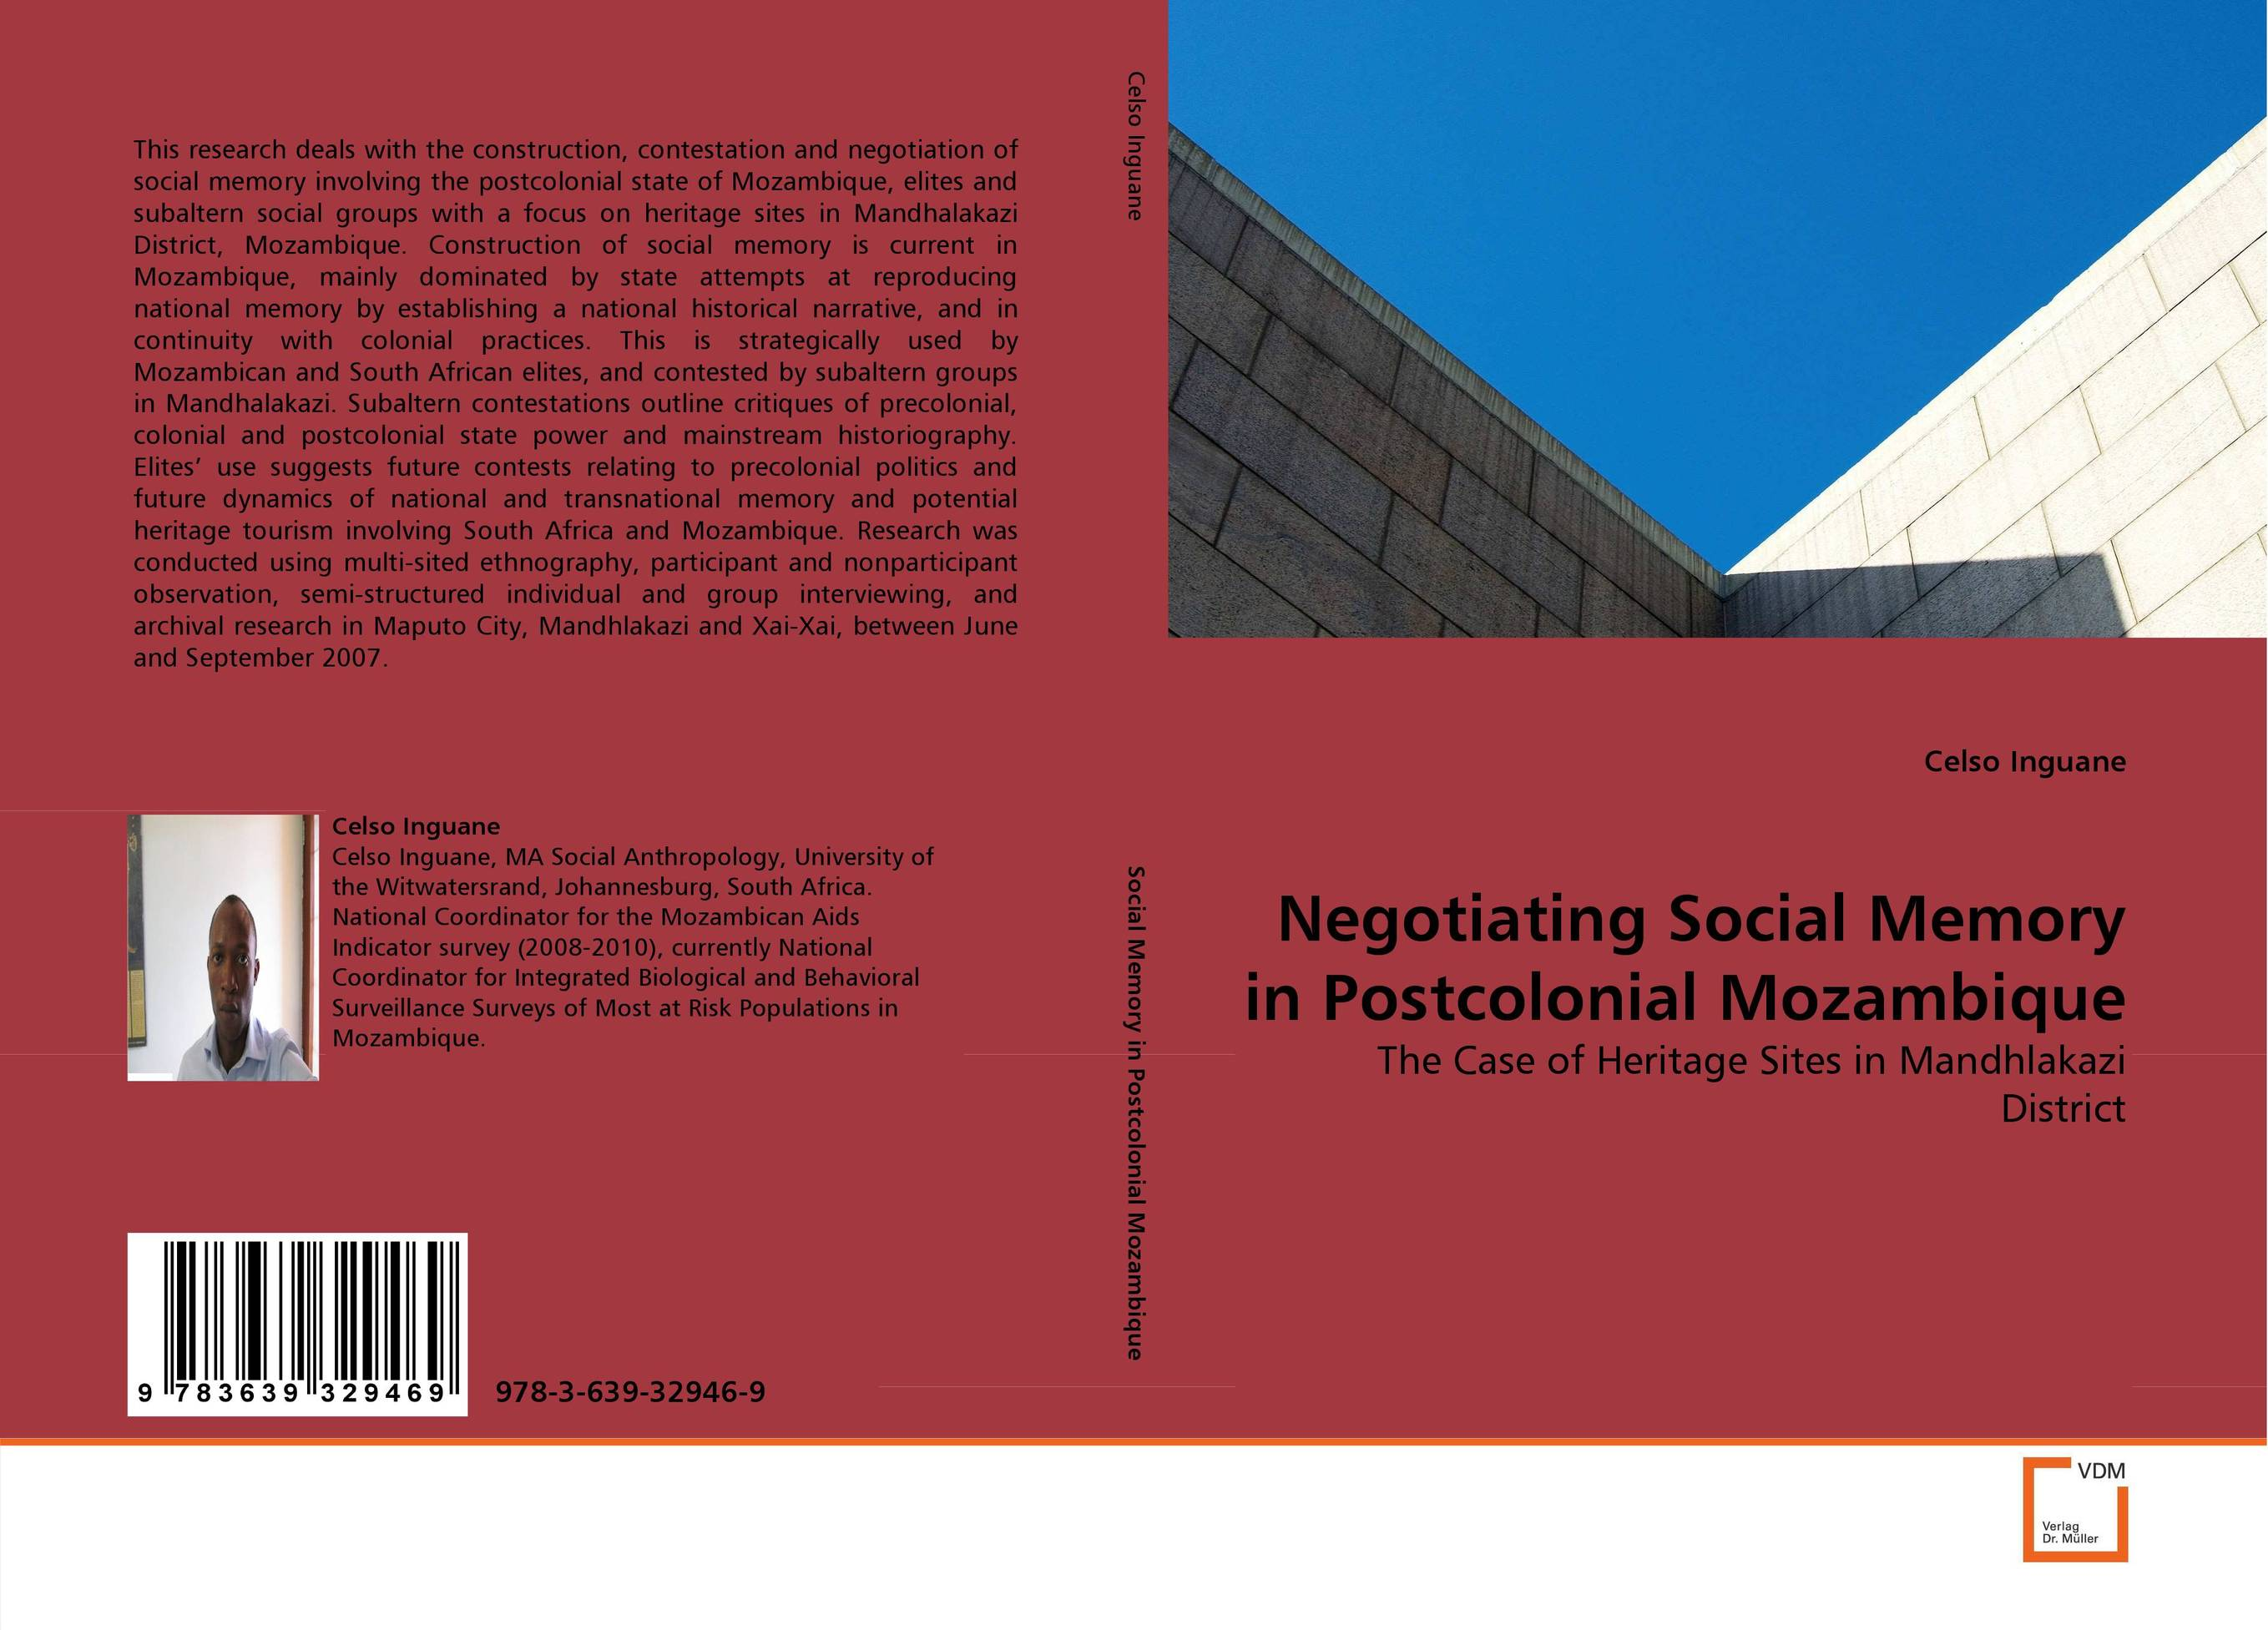 Negotiating Social Memory in Postcolonial Mozambique cultural and linguistic hybridity in postcolonial text